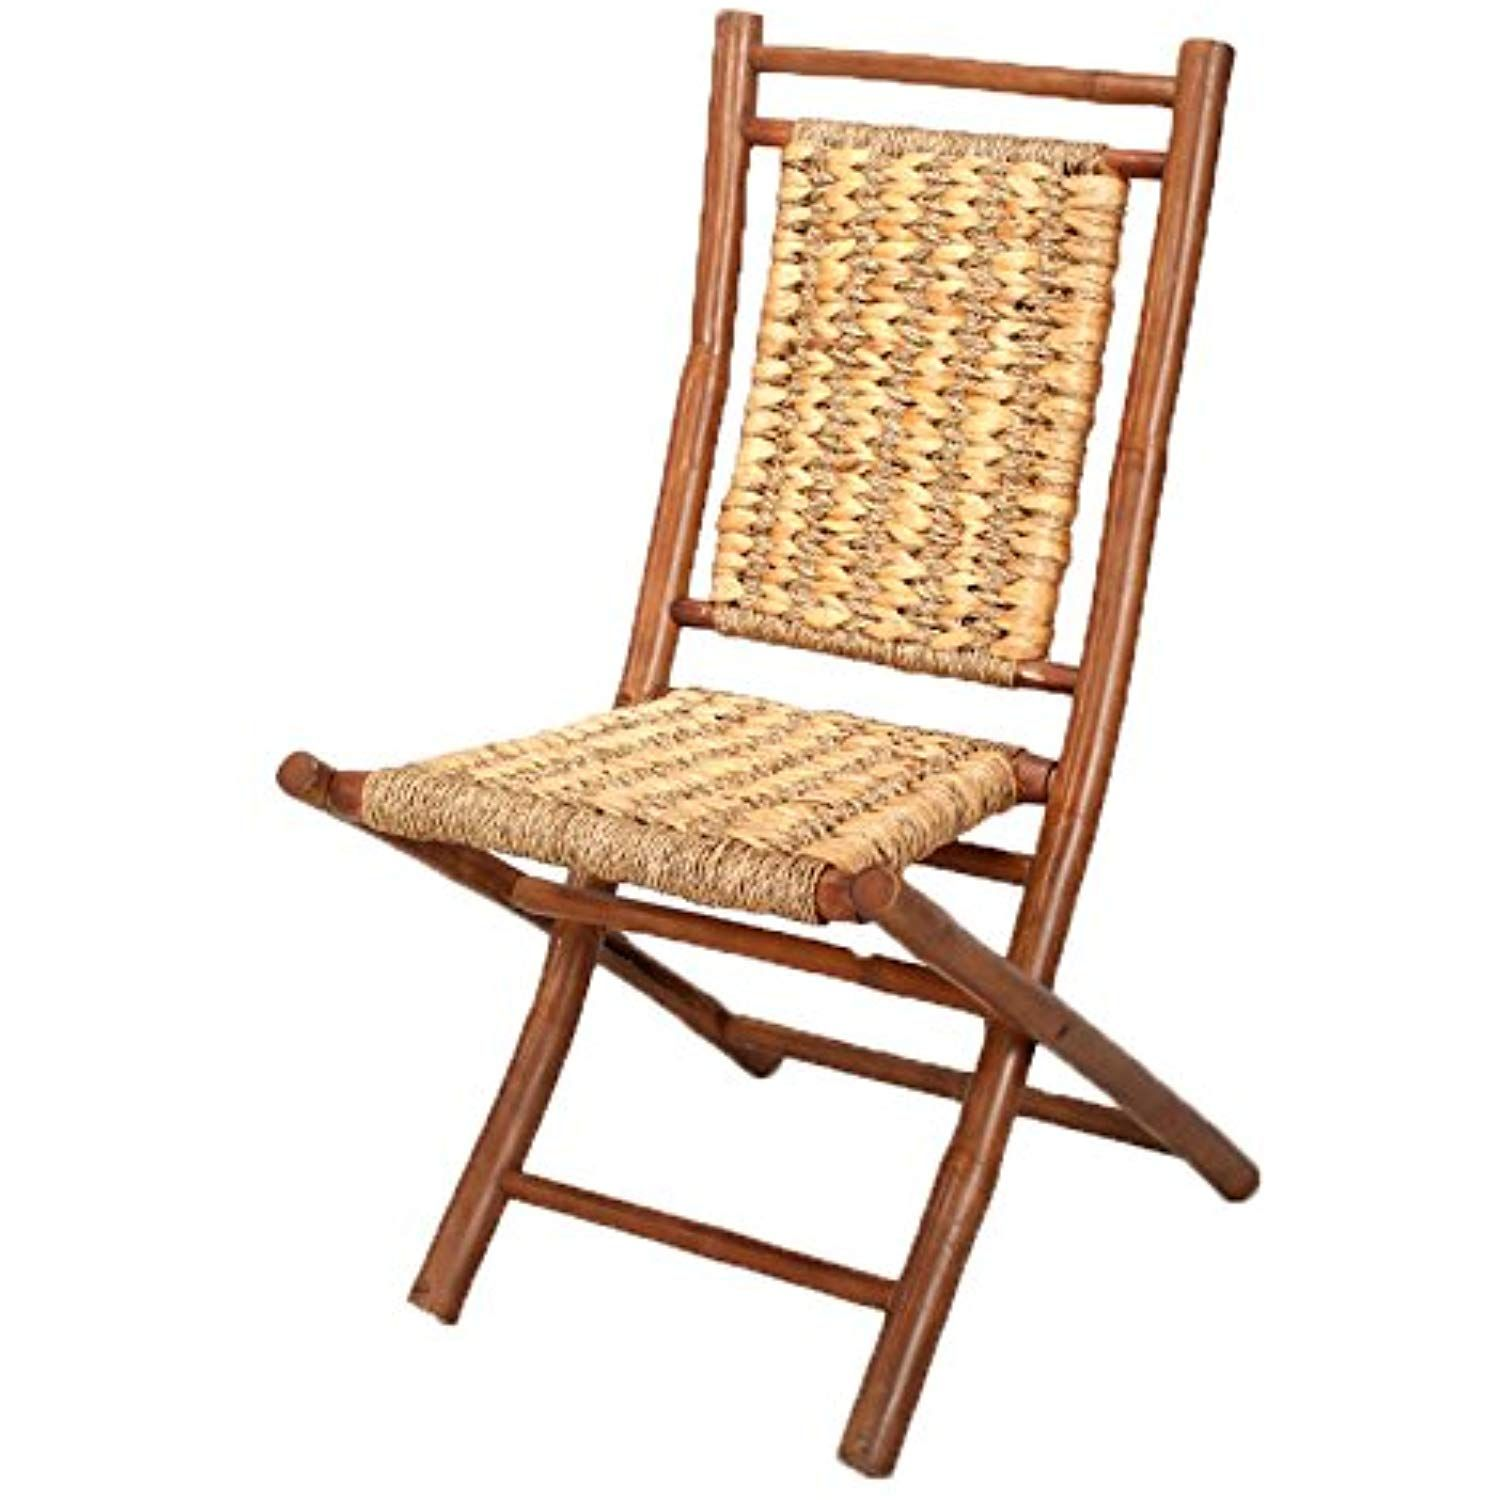 cf8097fa248 Heather Ann Creations Bamboo Folding Chairs with Open Link Combo Weave